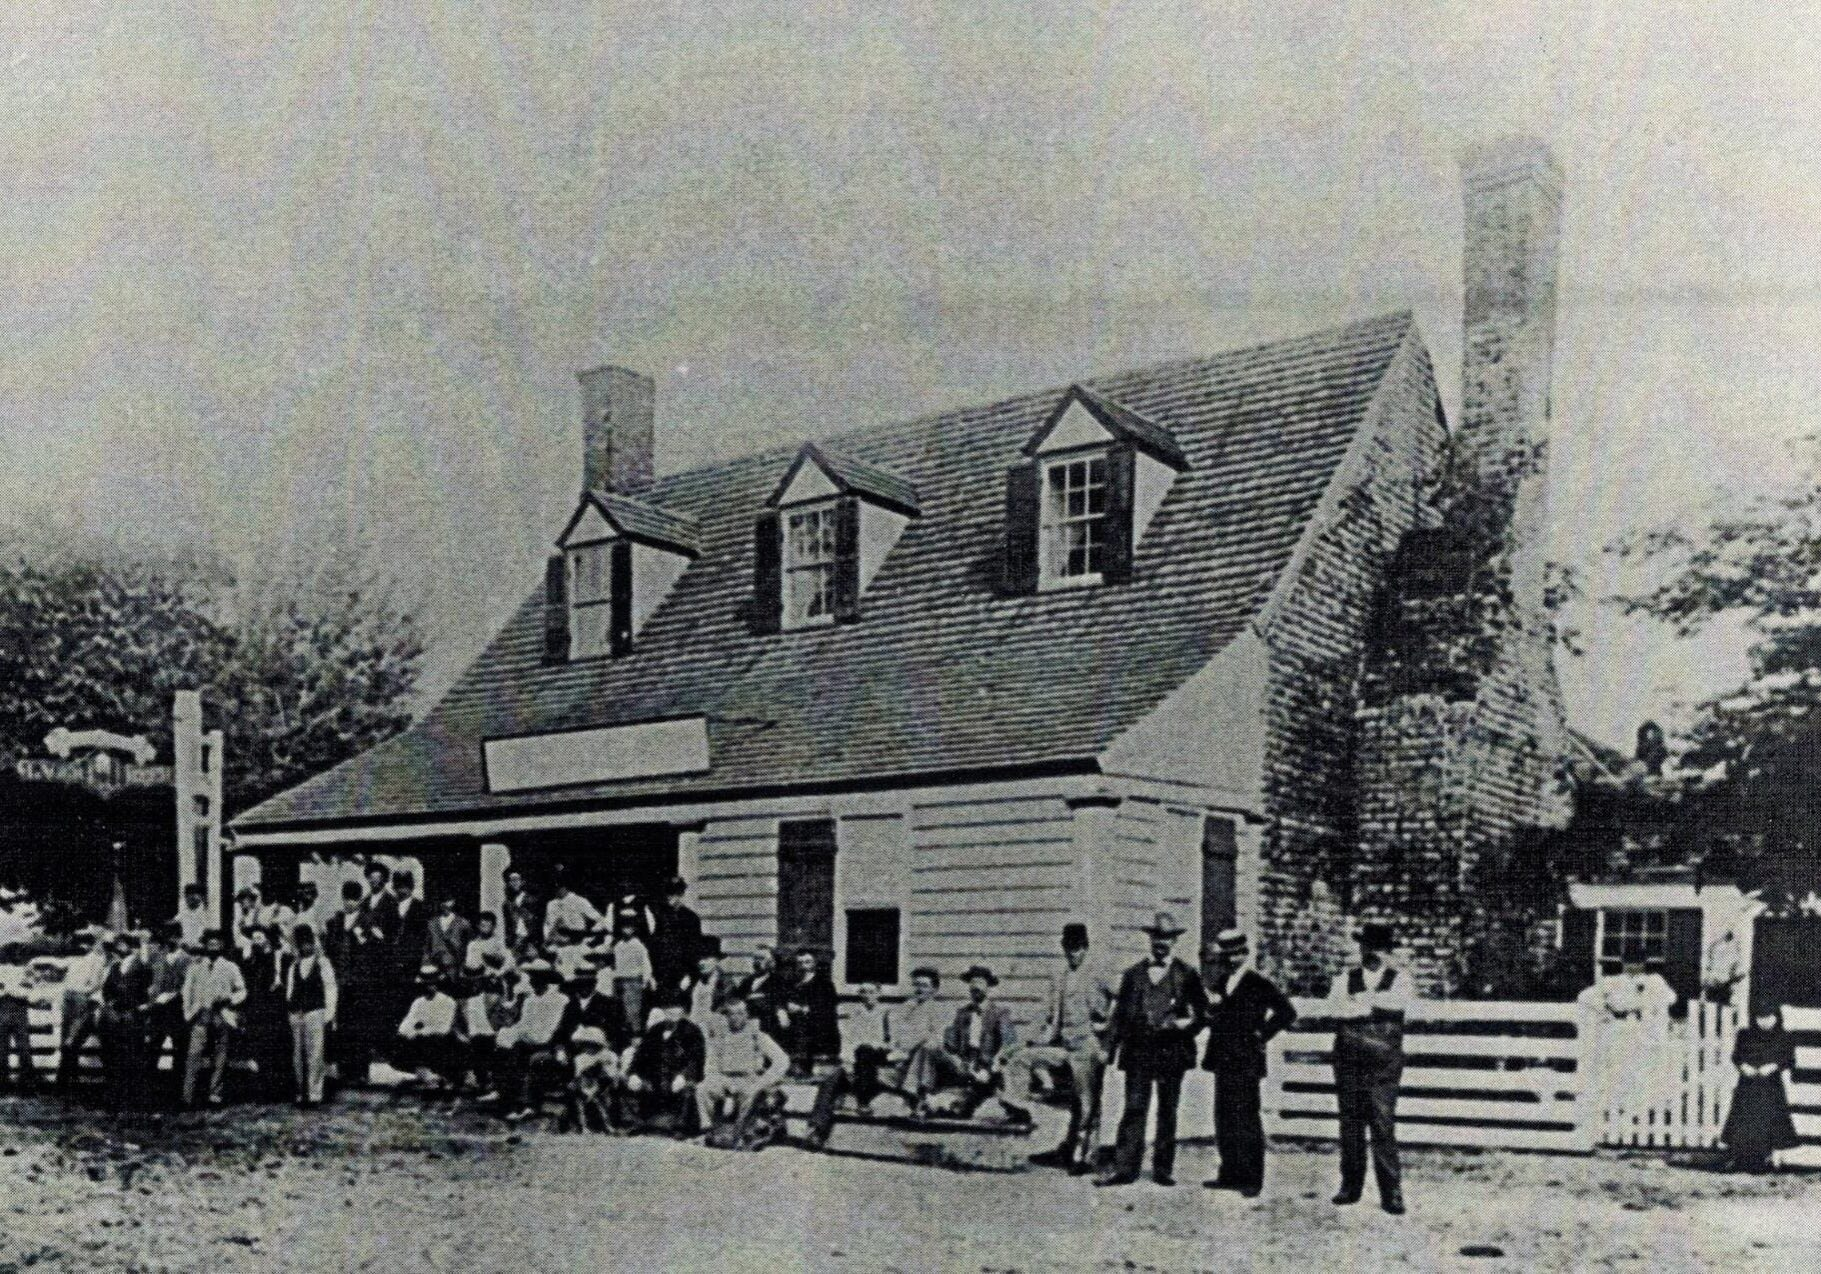 "Photo, circa 1890-1895 of ""locals"" in front of what was erroneously attributed as the site of the first play in English in the New World. Russell E. Nixon, LSIT. Hurt & Proffitt, Lynchburg, VA, June 6, 2001."